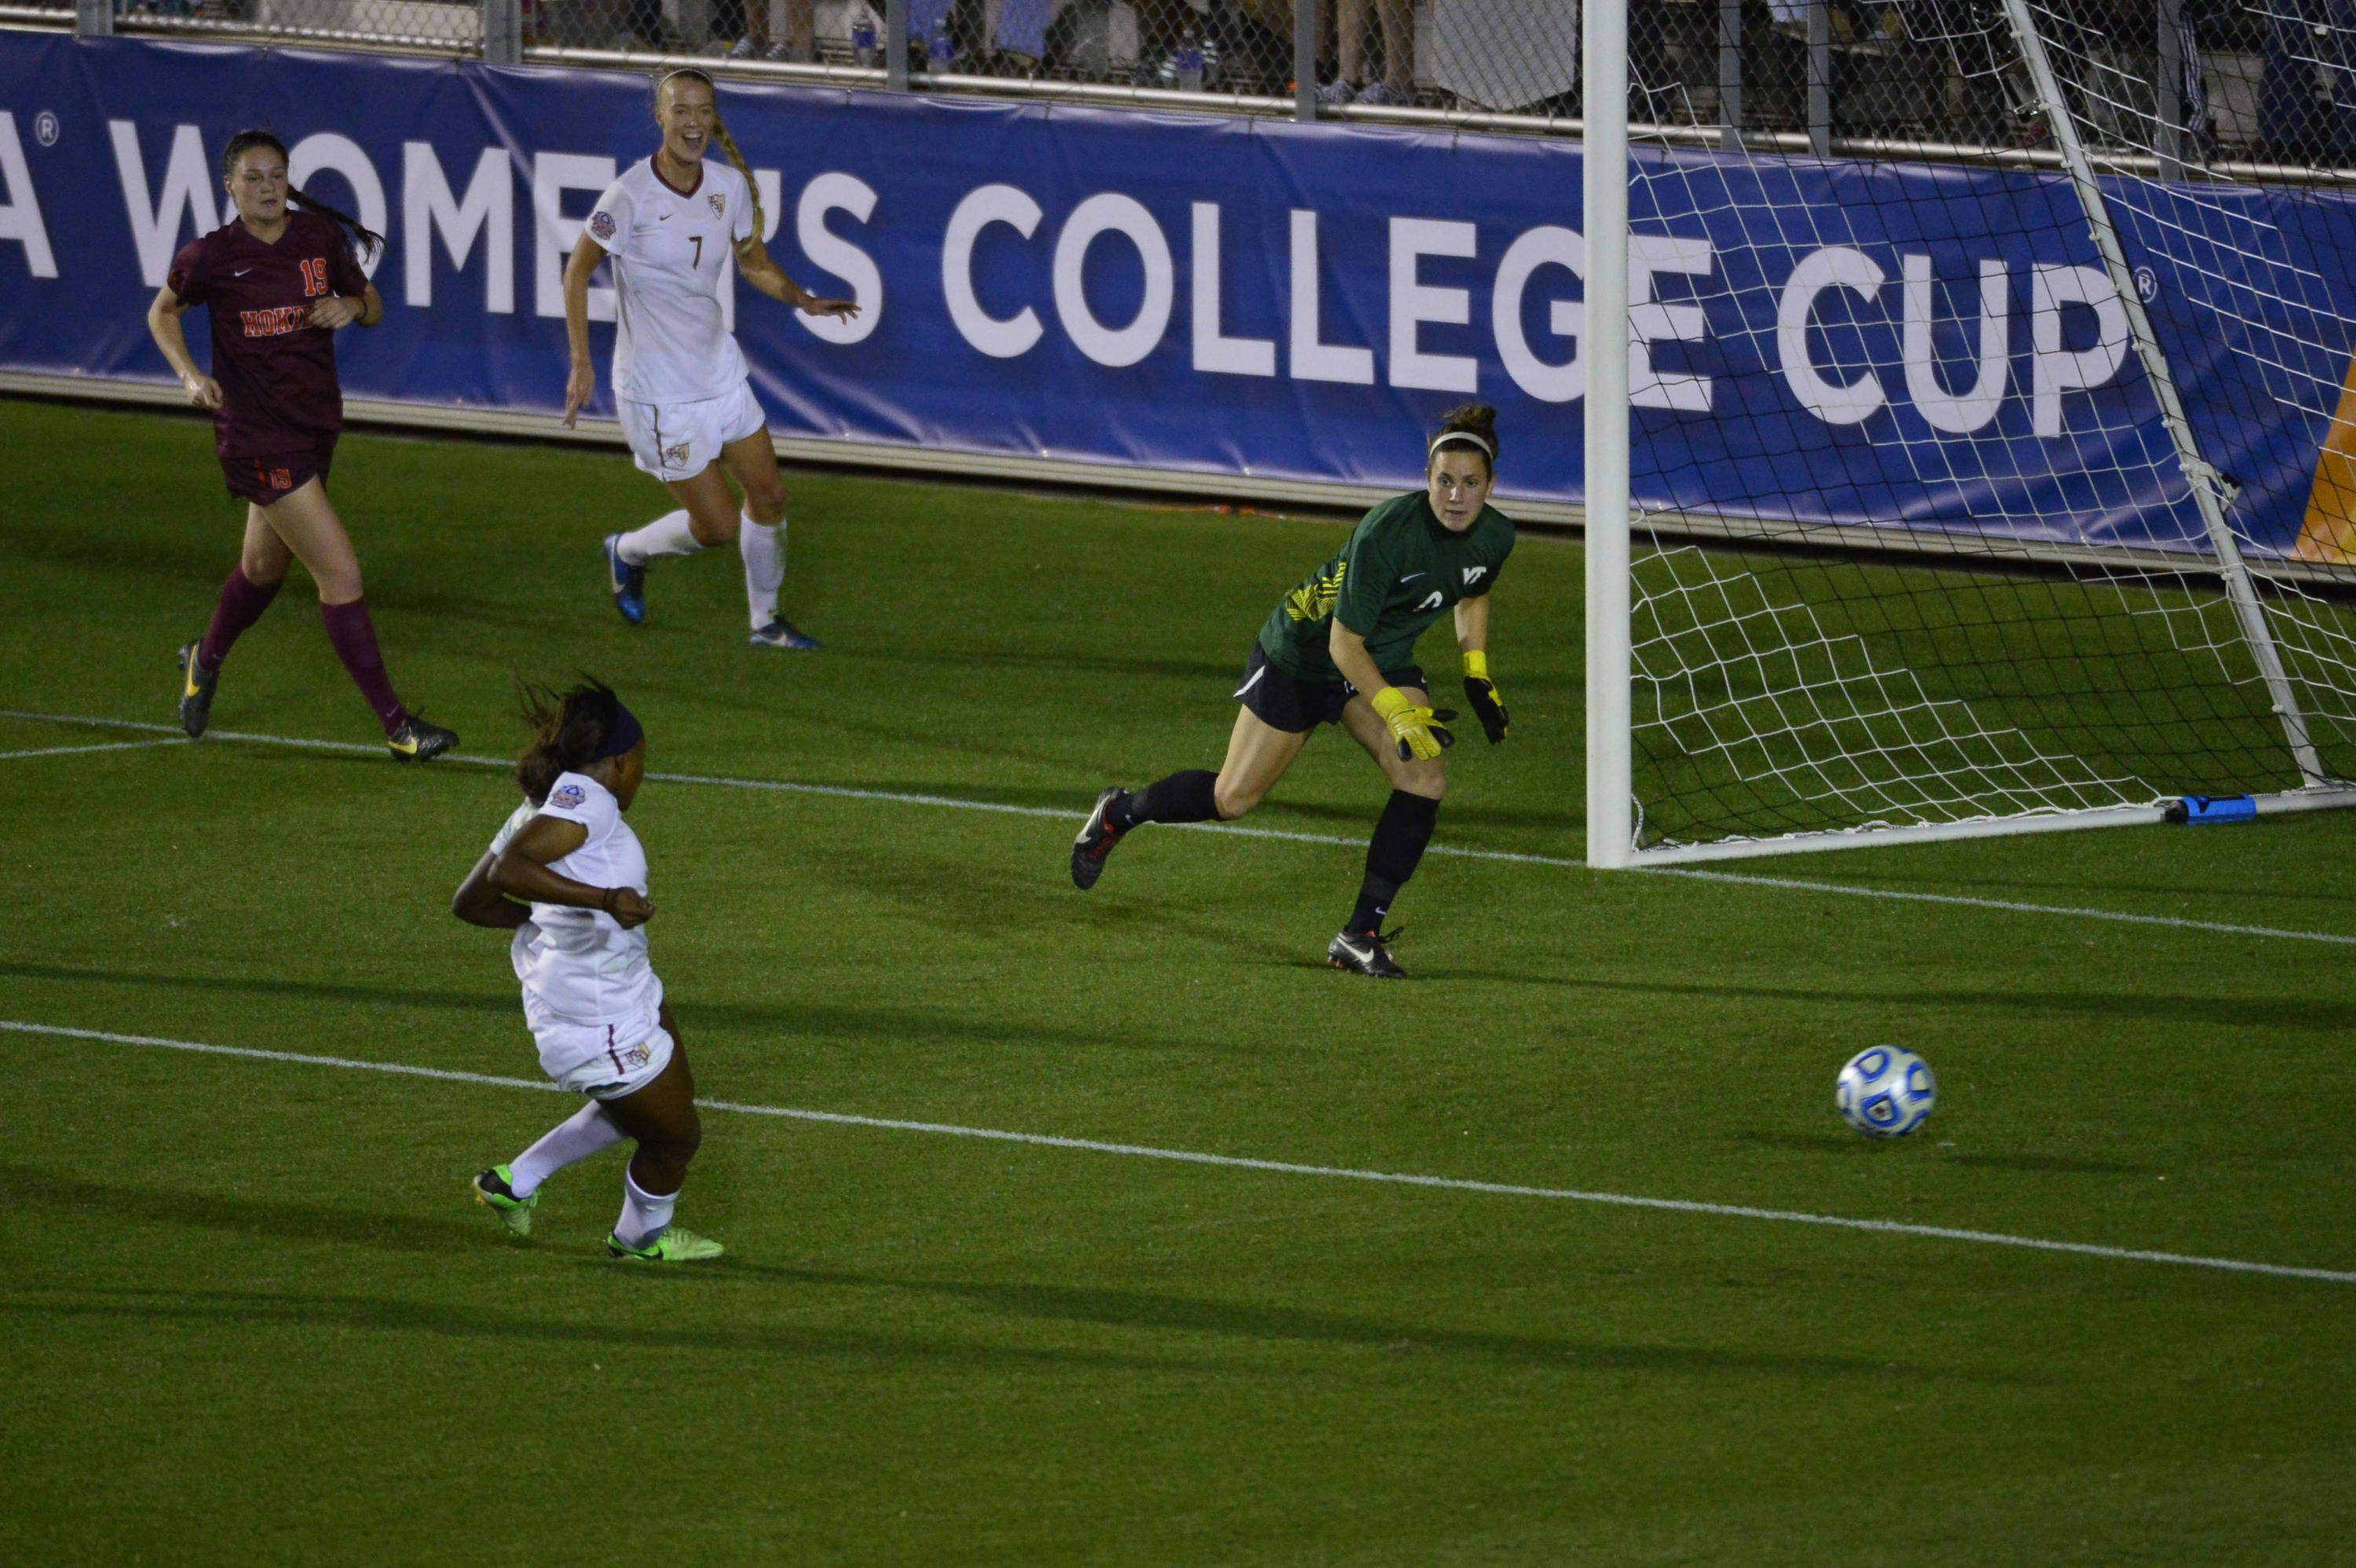 Dec 6, 2013; Cary, NC, USA; Florida State Seminoles midfielder Jamia Fields (4) scores a goal as midfielder Dagny Brynjarsdottir (7) looks on and Virginia Tech Hokies defender Jordan Coburn (19) and goalkeeper Cayle Colpitts (0) defend in the second half at WakeMed Soccer Park. Mandatory Credit: Bob Donnan-USA TODAY Sports